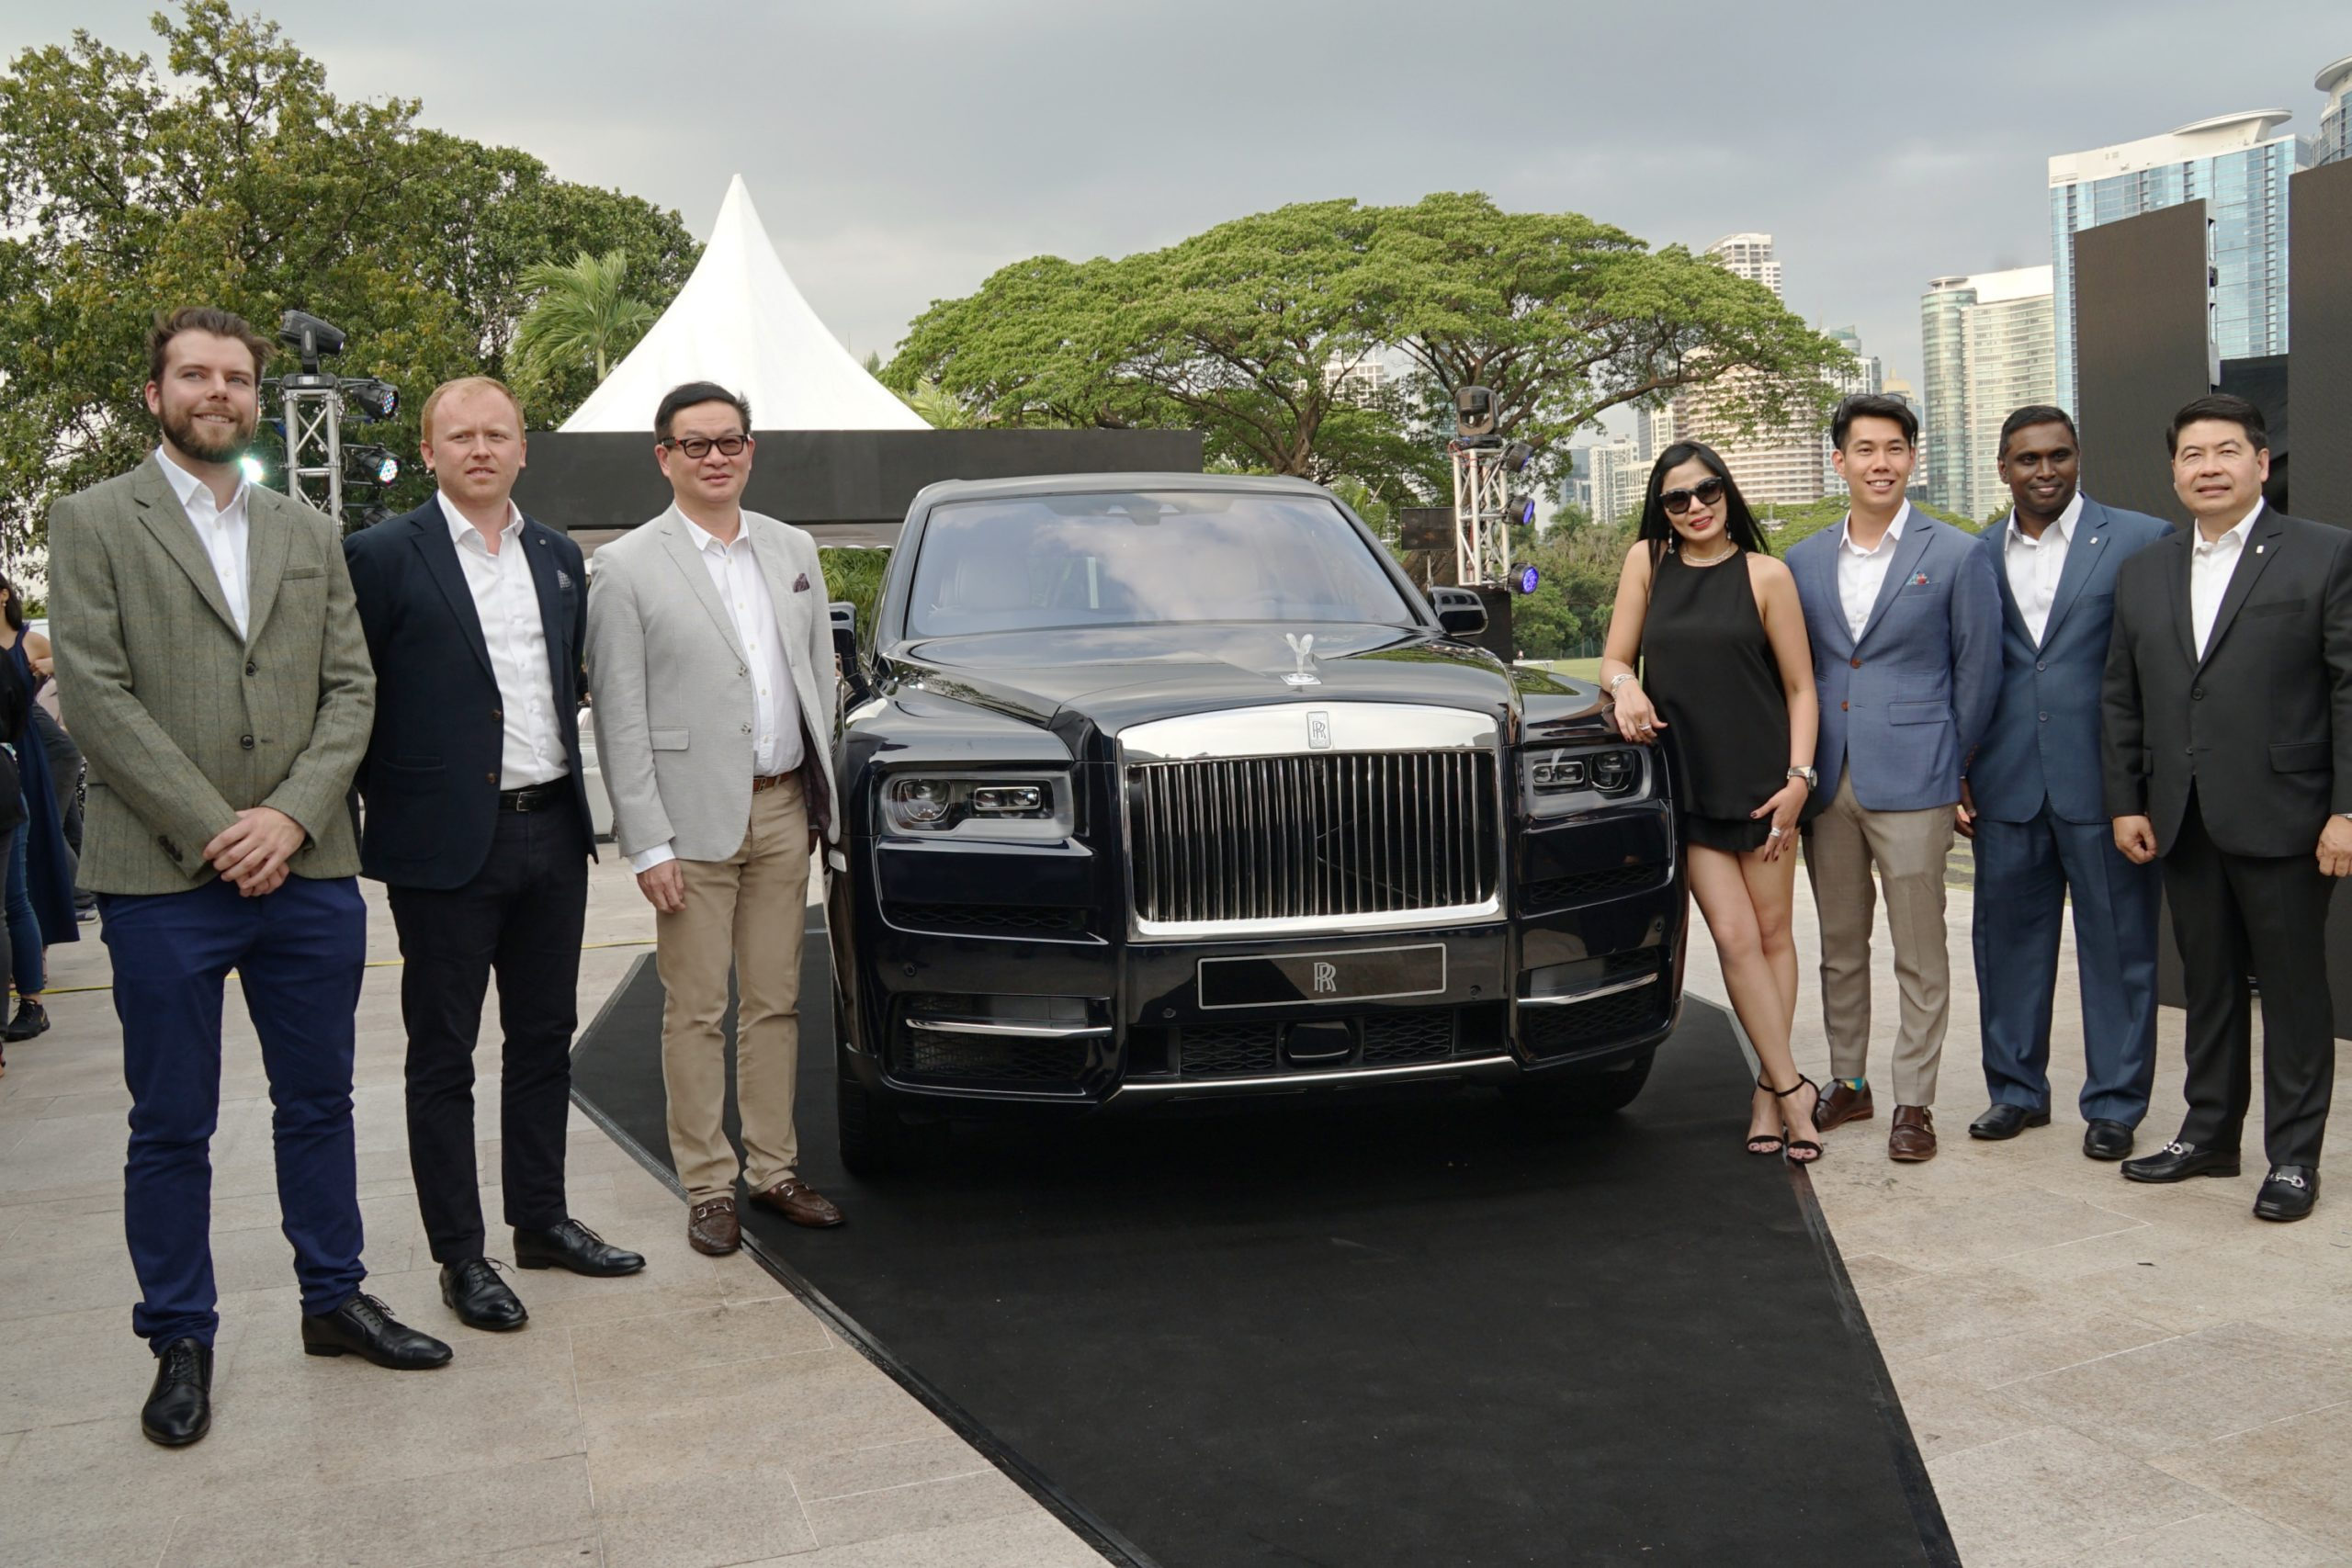 Philippines welcomes the most envied and desired SUV, the new Rolls-Royce Cullinan